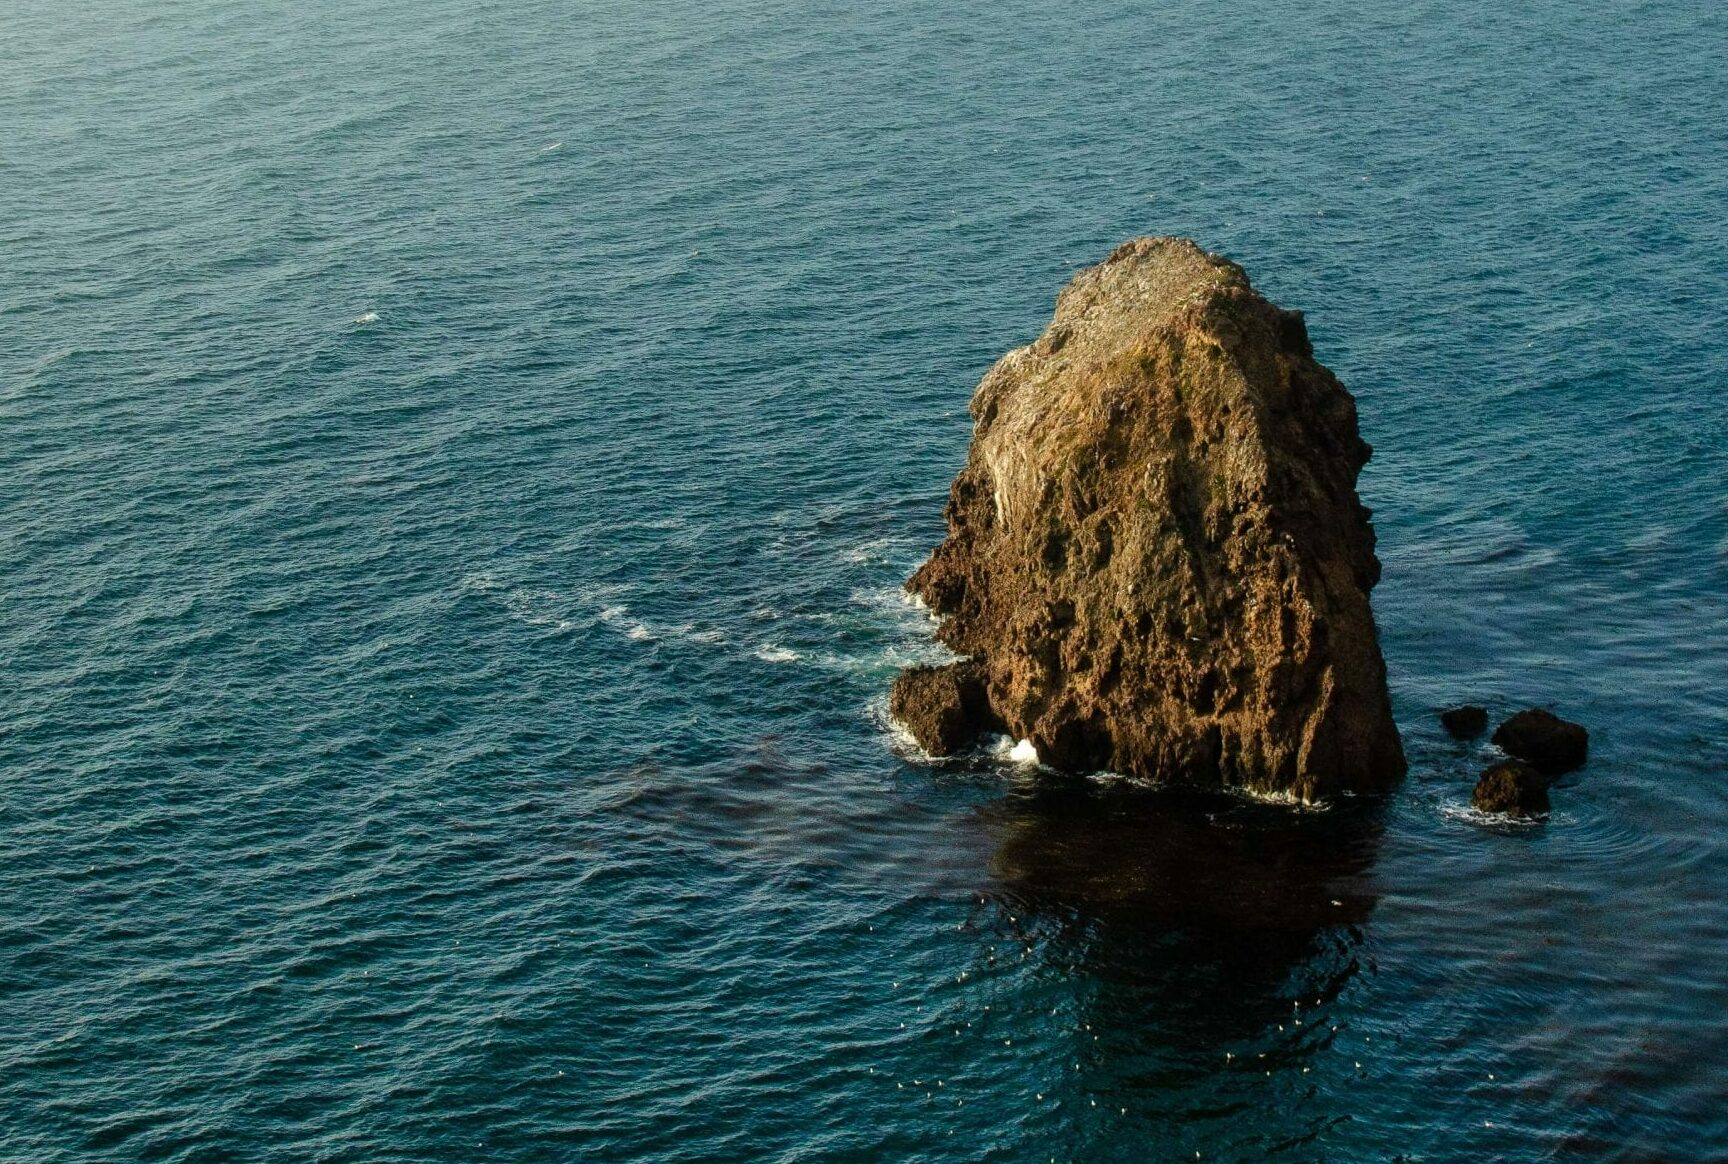 Channel Islands National Park geology